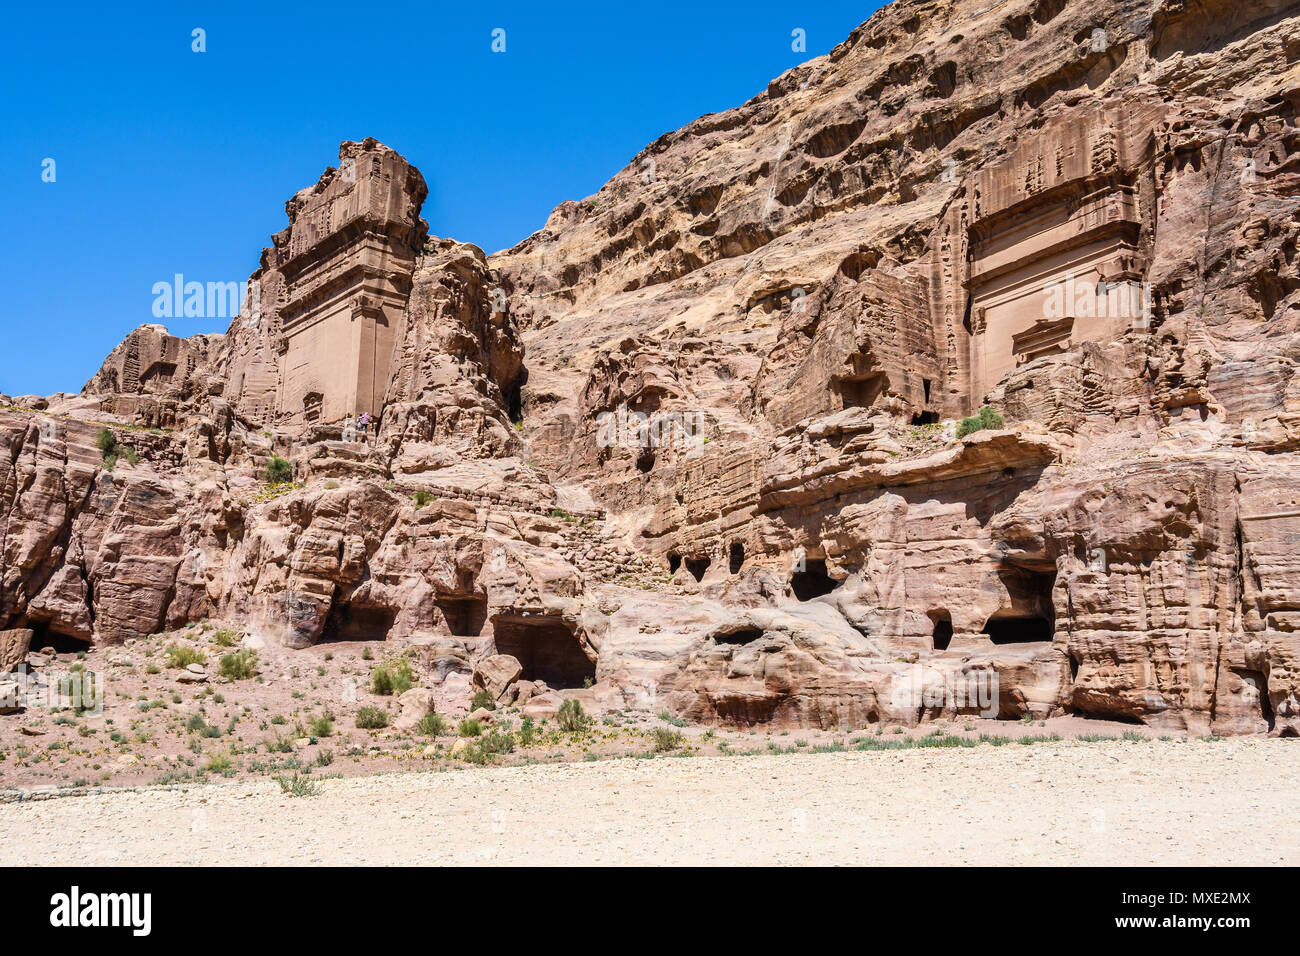 Antique tombs in the Lost City of Petra, Jordan - Stock Image